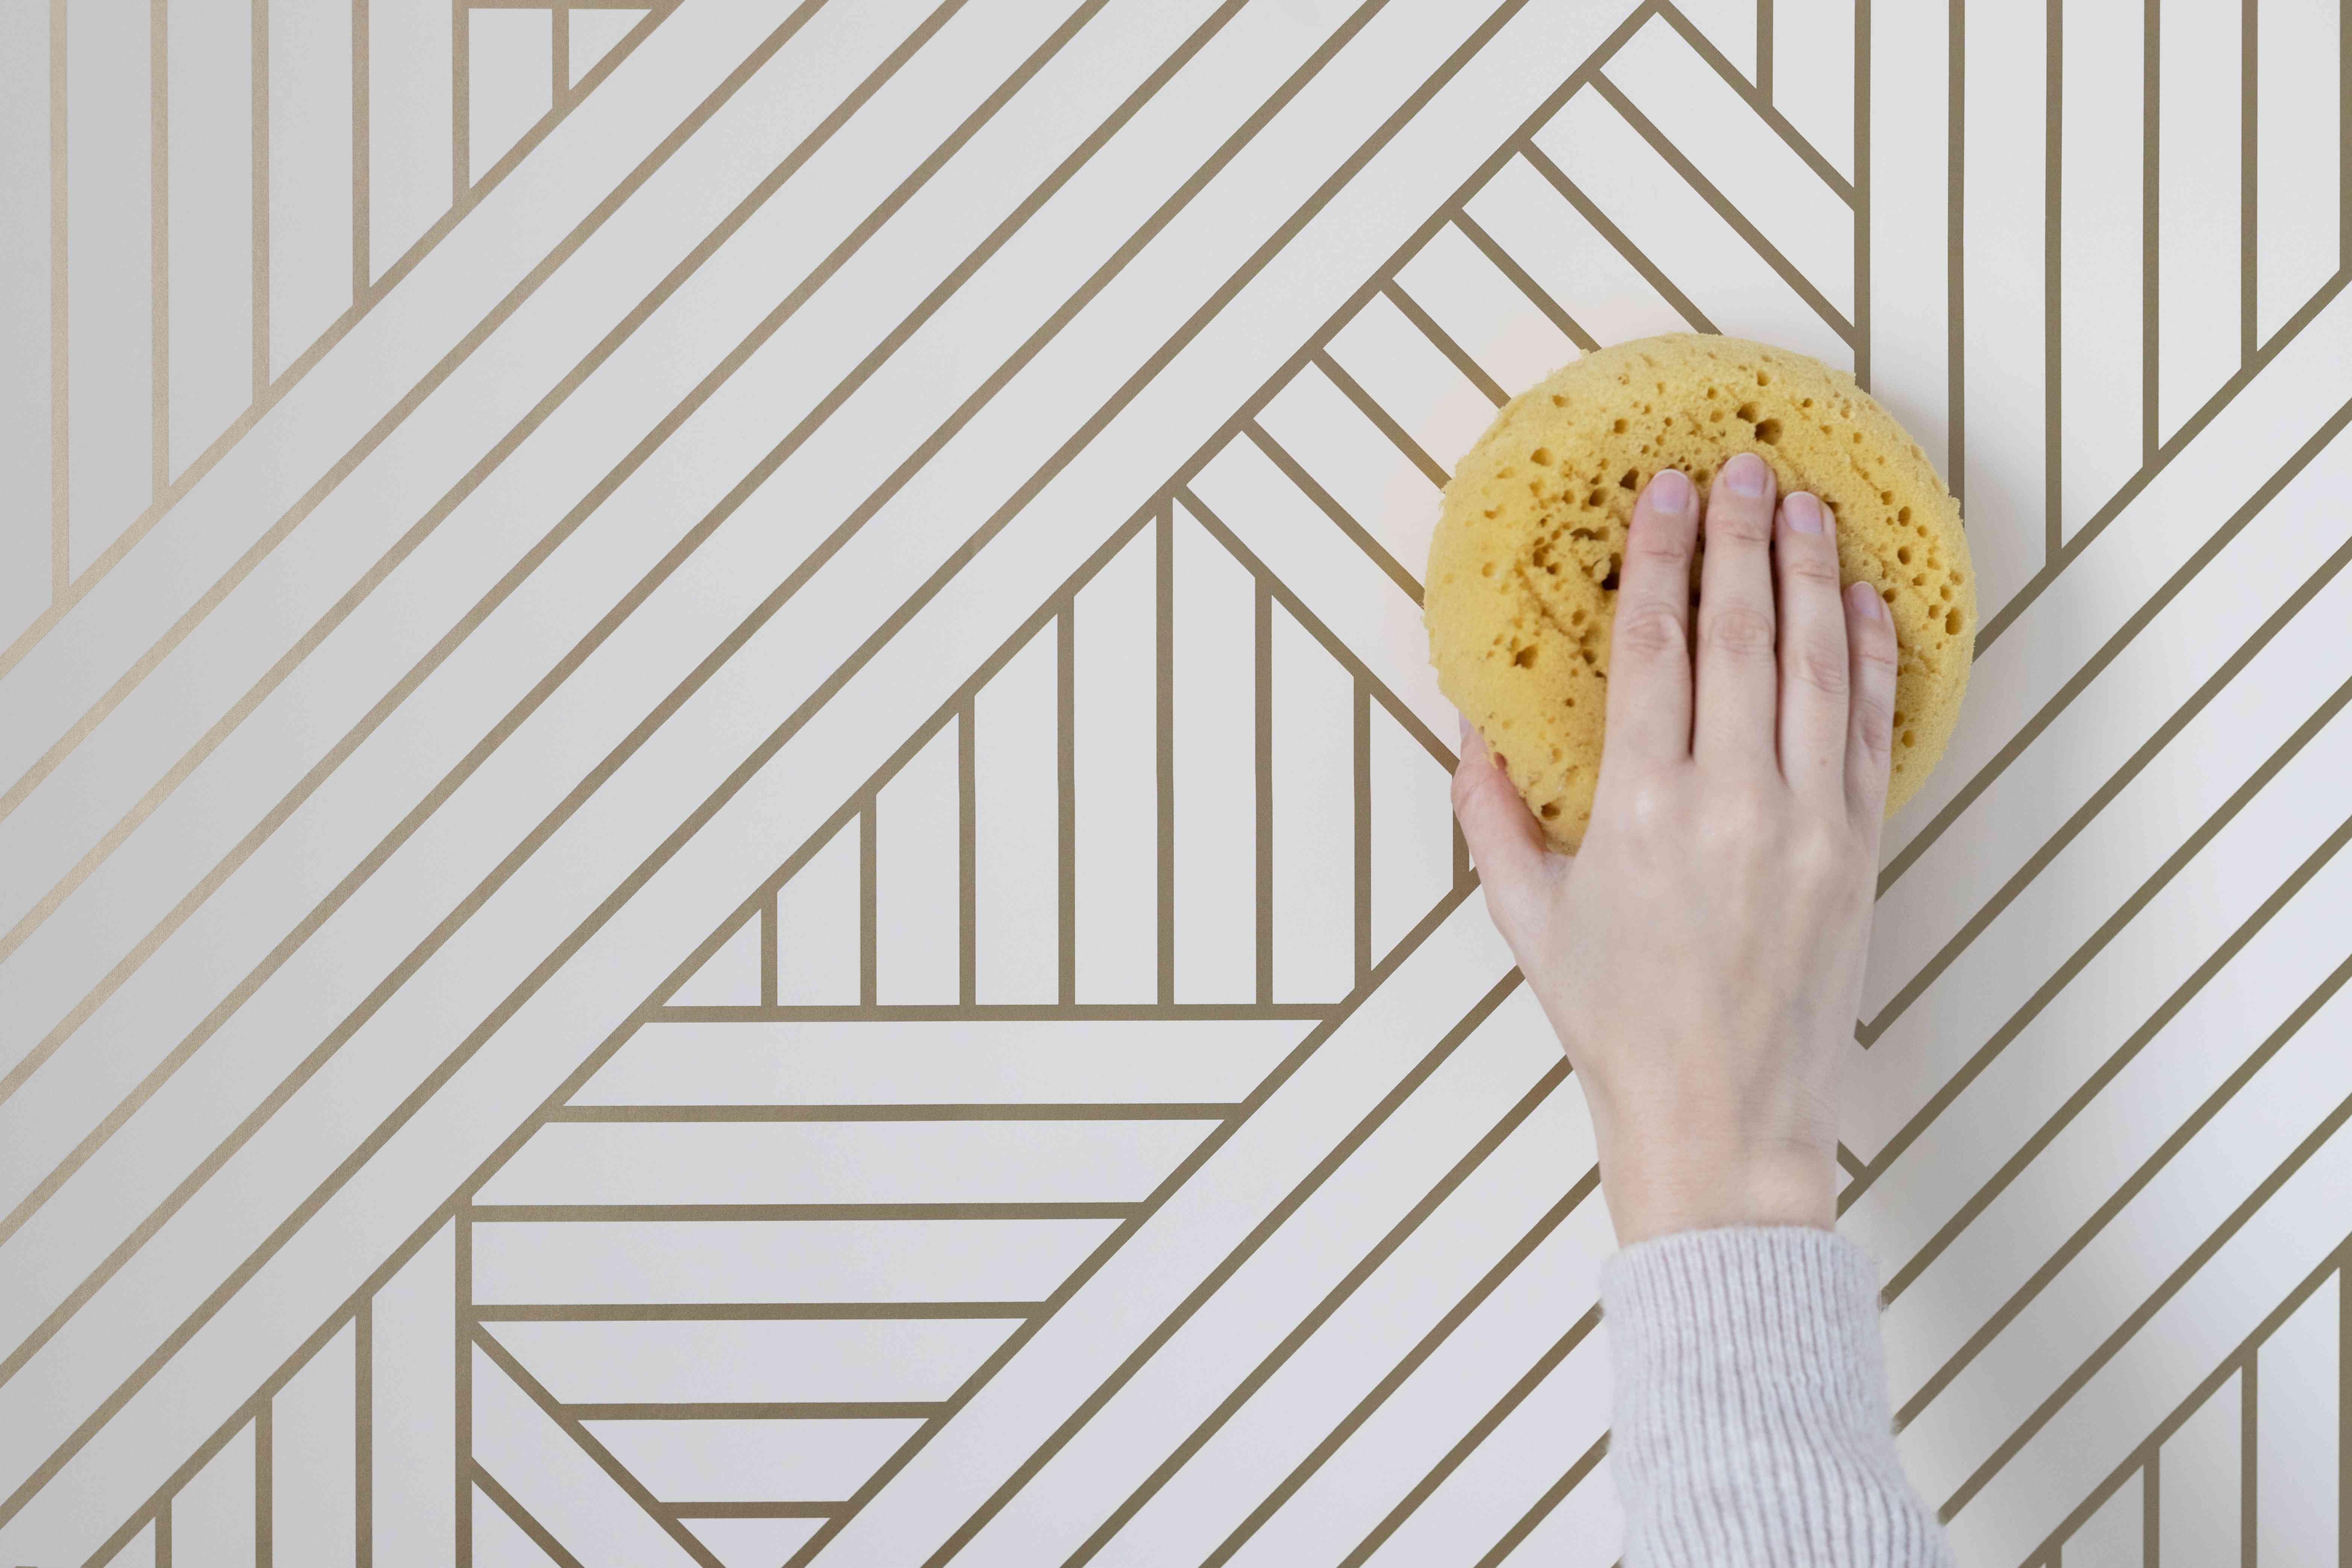 Soaked sponge wiping down white and gold striped wallpaper